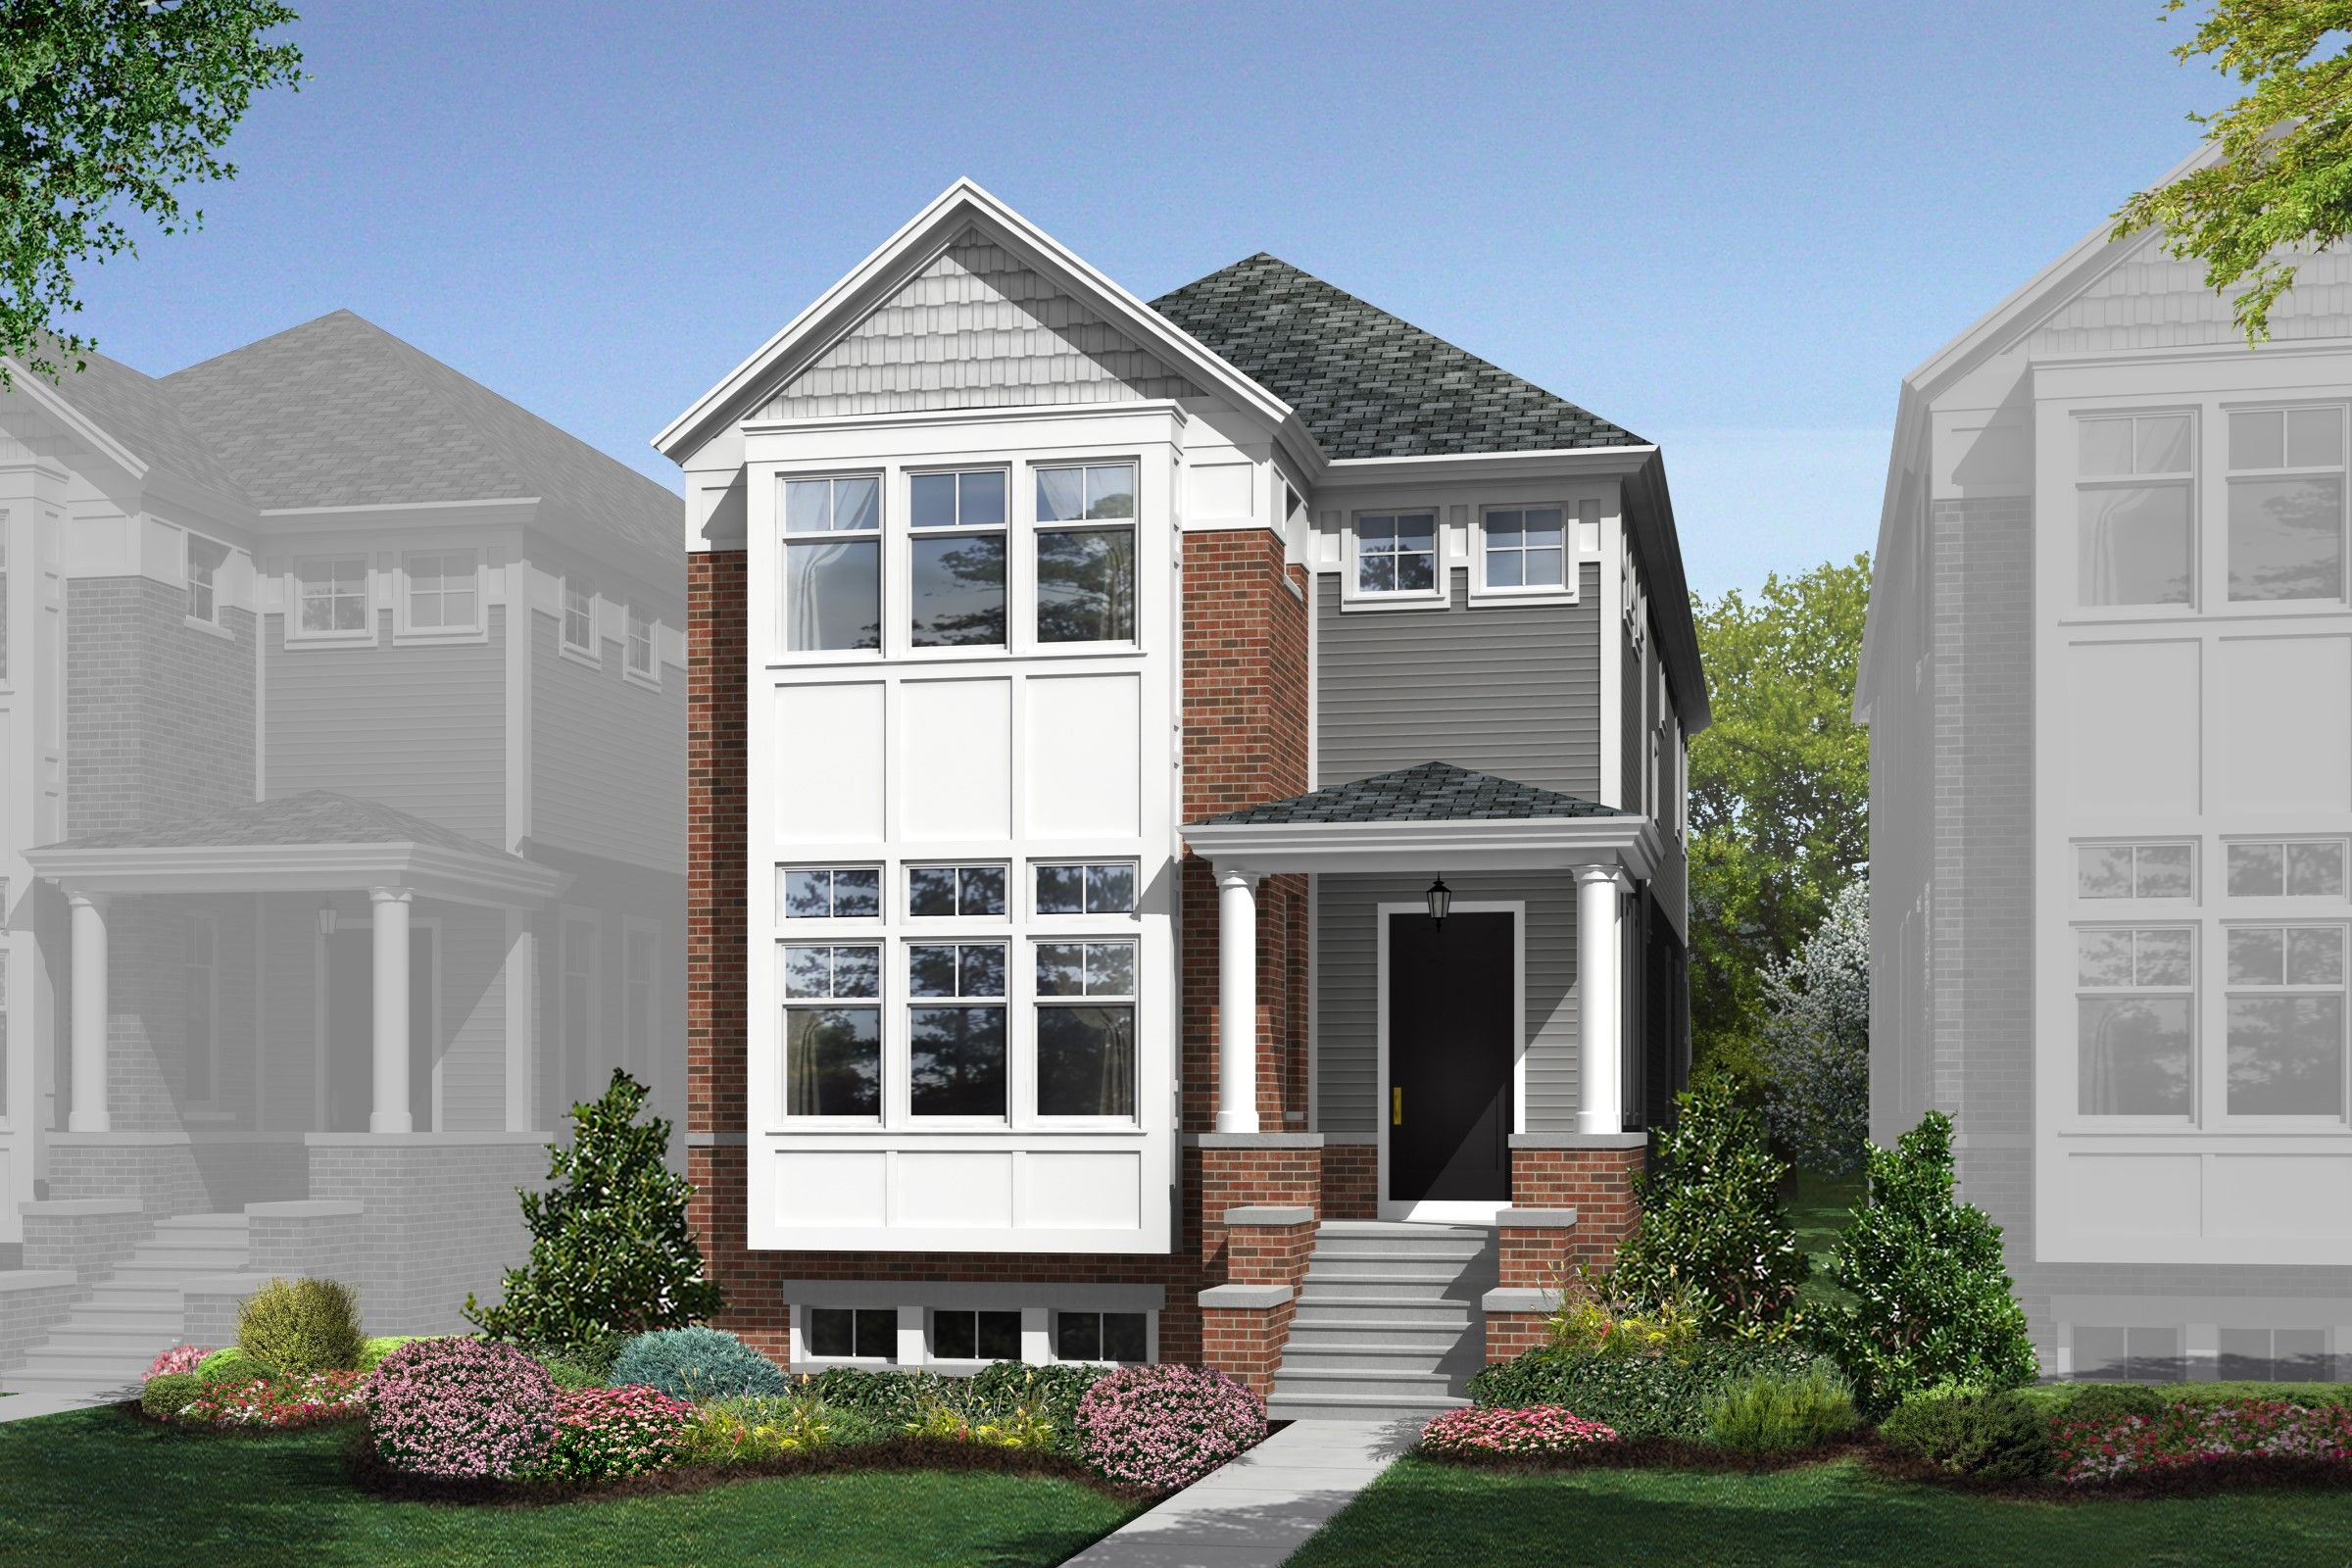 Single Family for Sale at Dickinson 6072 N Sauganash Avenue, Homesite 23 Chicago, Illinois 60646 United States